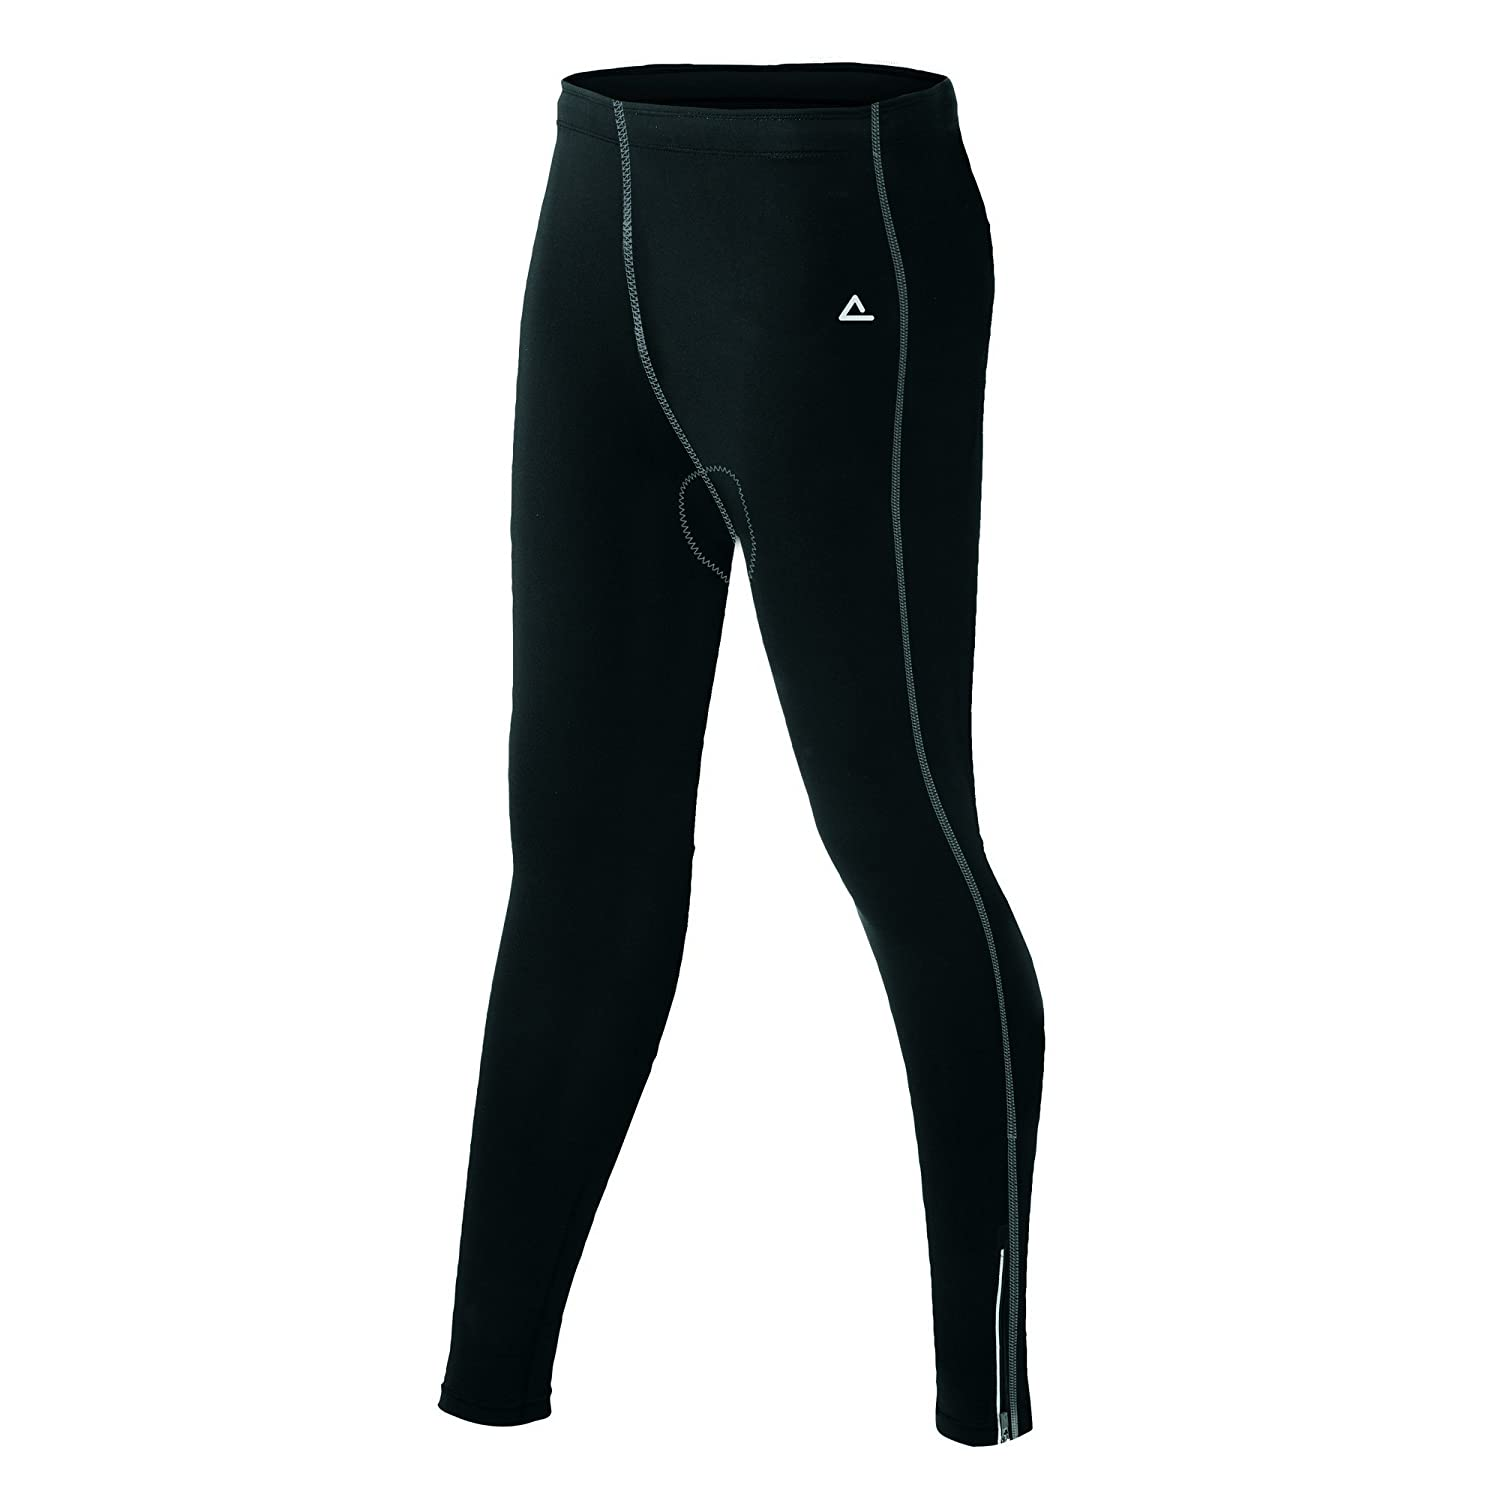 80e627f72e0d92 Dare 2B Womens/Ladies Fast And Light Tracked Running Leggings/Tights: Dare2b:  Amazon.co.uk: Clothing